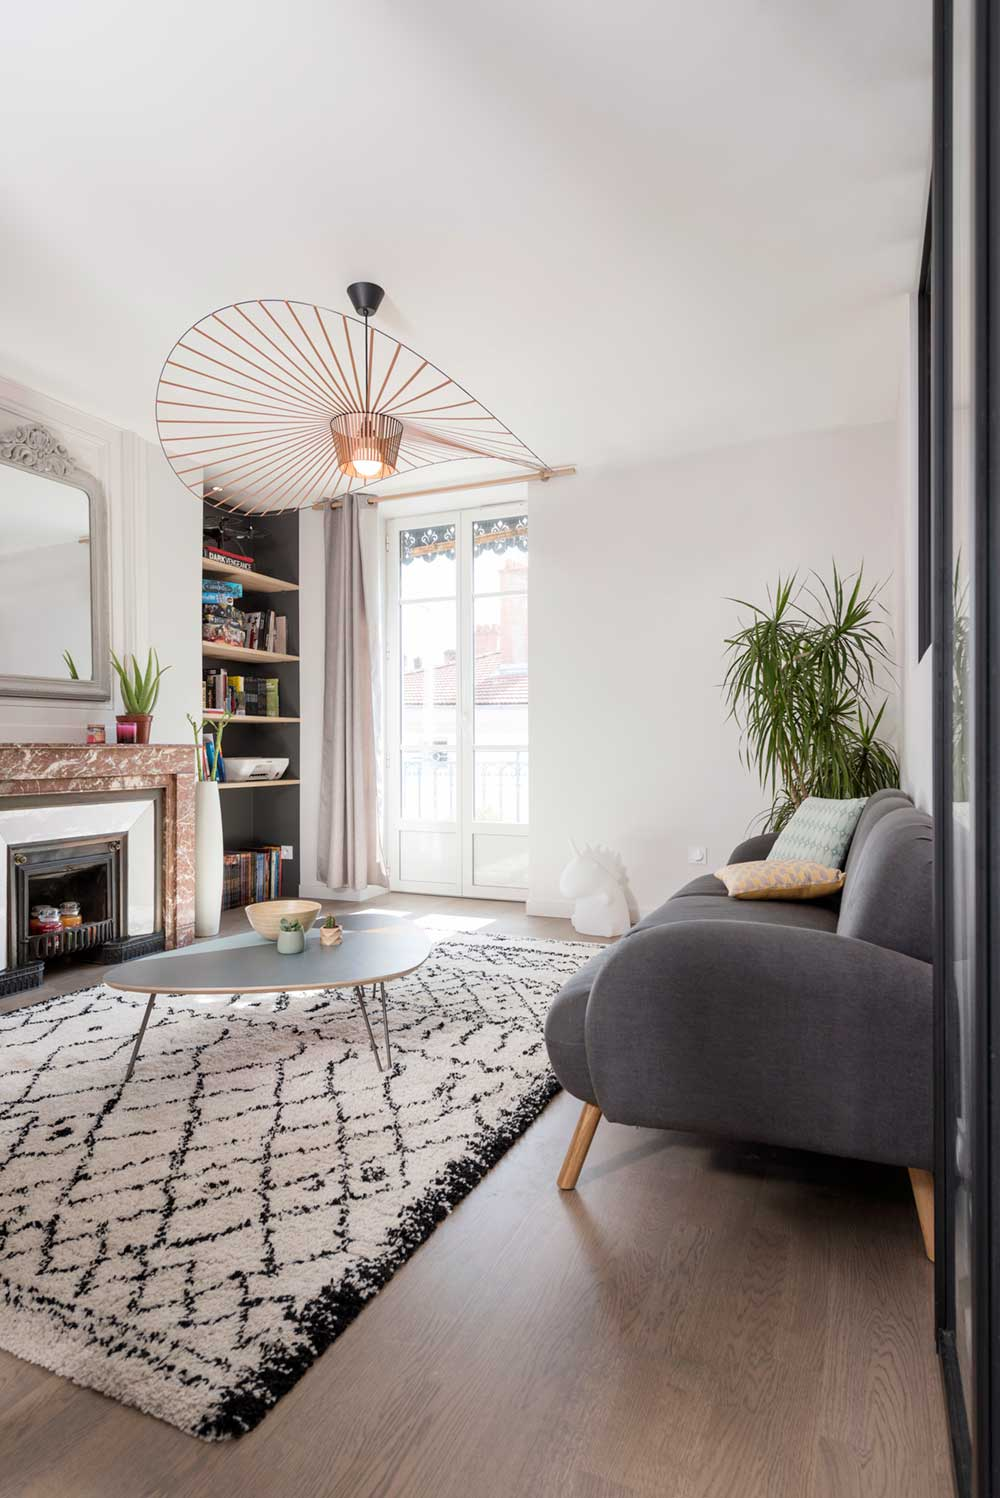 The Apartment Resides In The Area And It Was Refurbished By Marion Lanoe.  Lanoe Has An Architectural Office In Lyon And Tries, Exceptionally Well, U201c[u2026